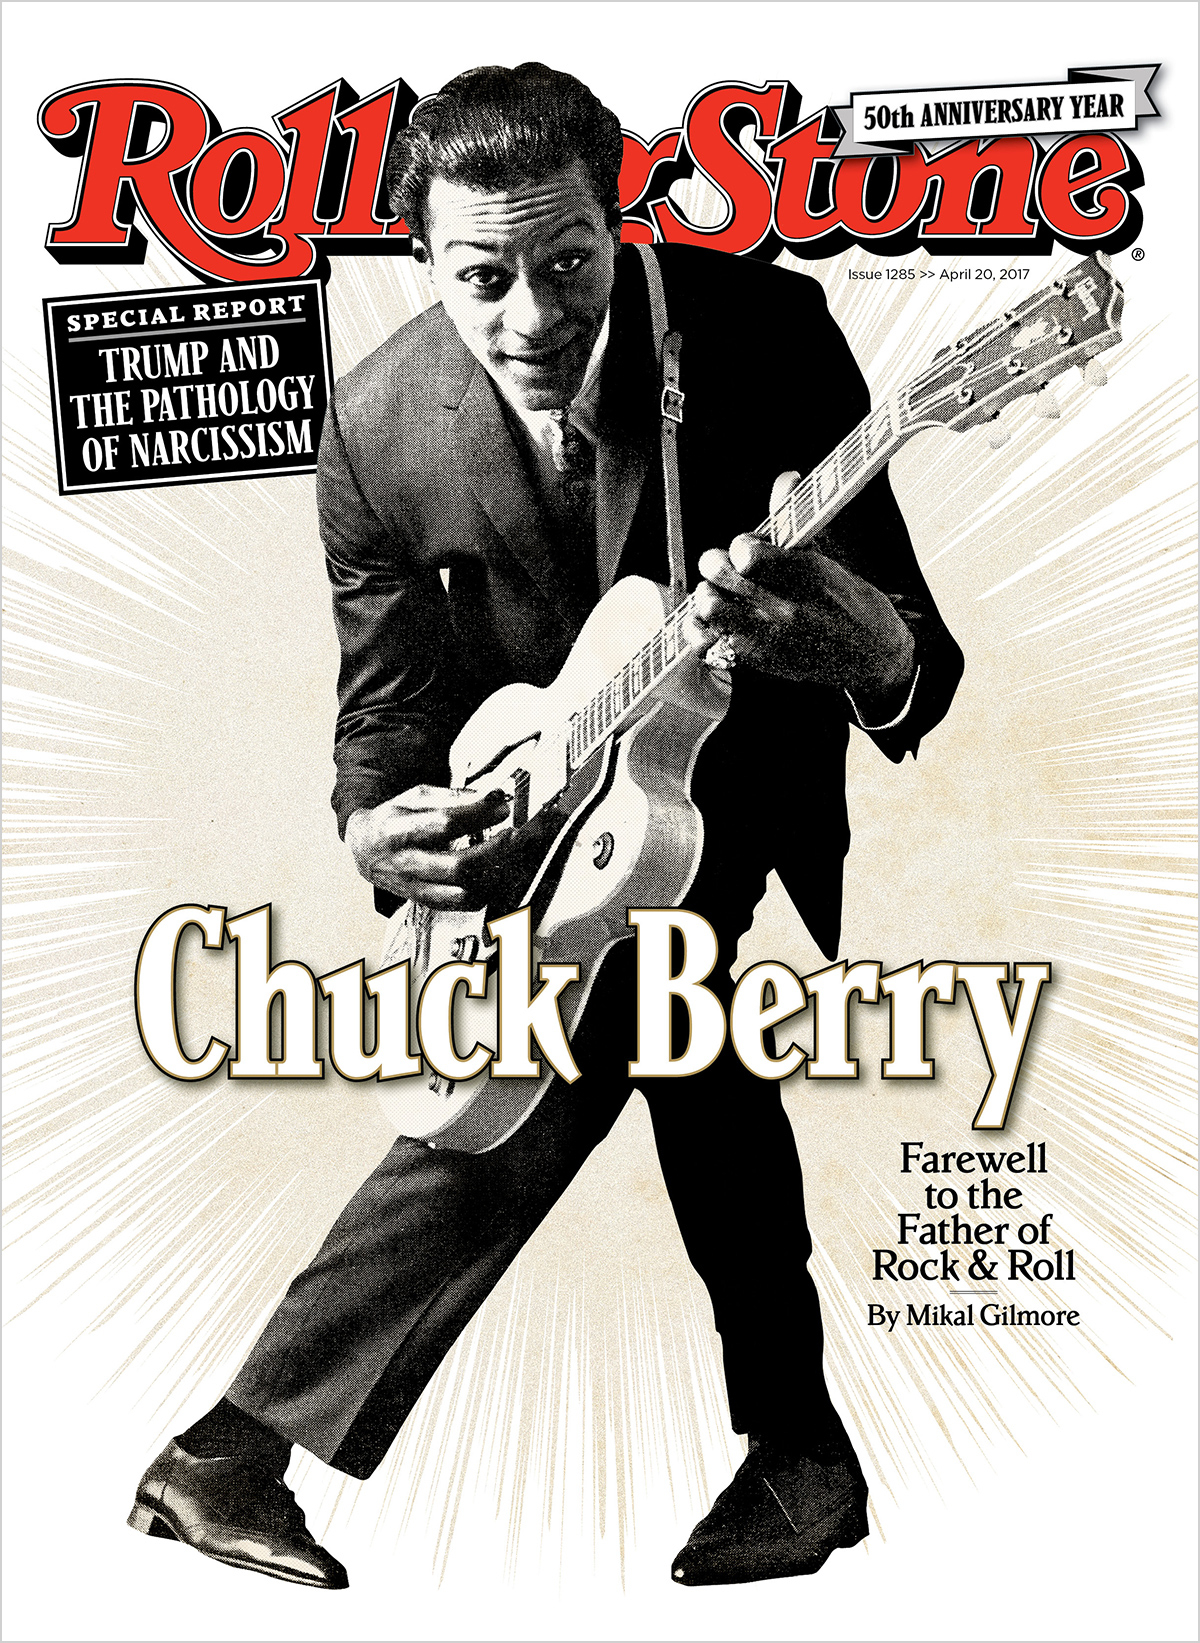 Chuck Berry: Inside Father of Rock's Triumphs, Scandals – Rolling Stone